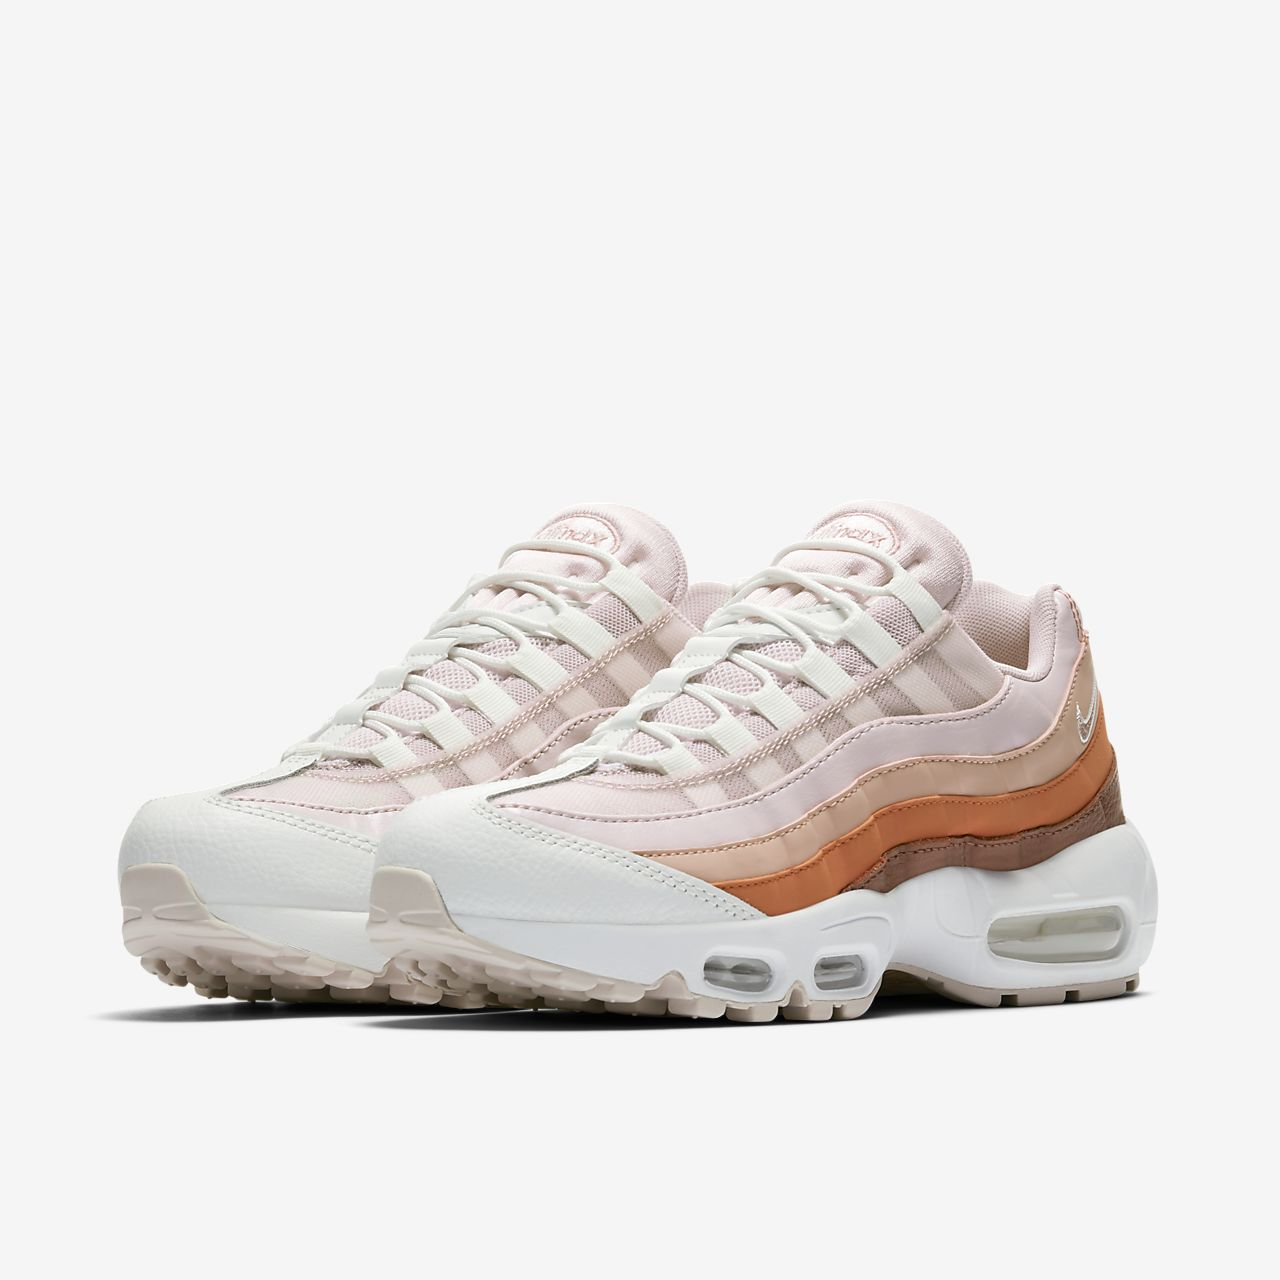 nike air max 95 og damenschuh